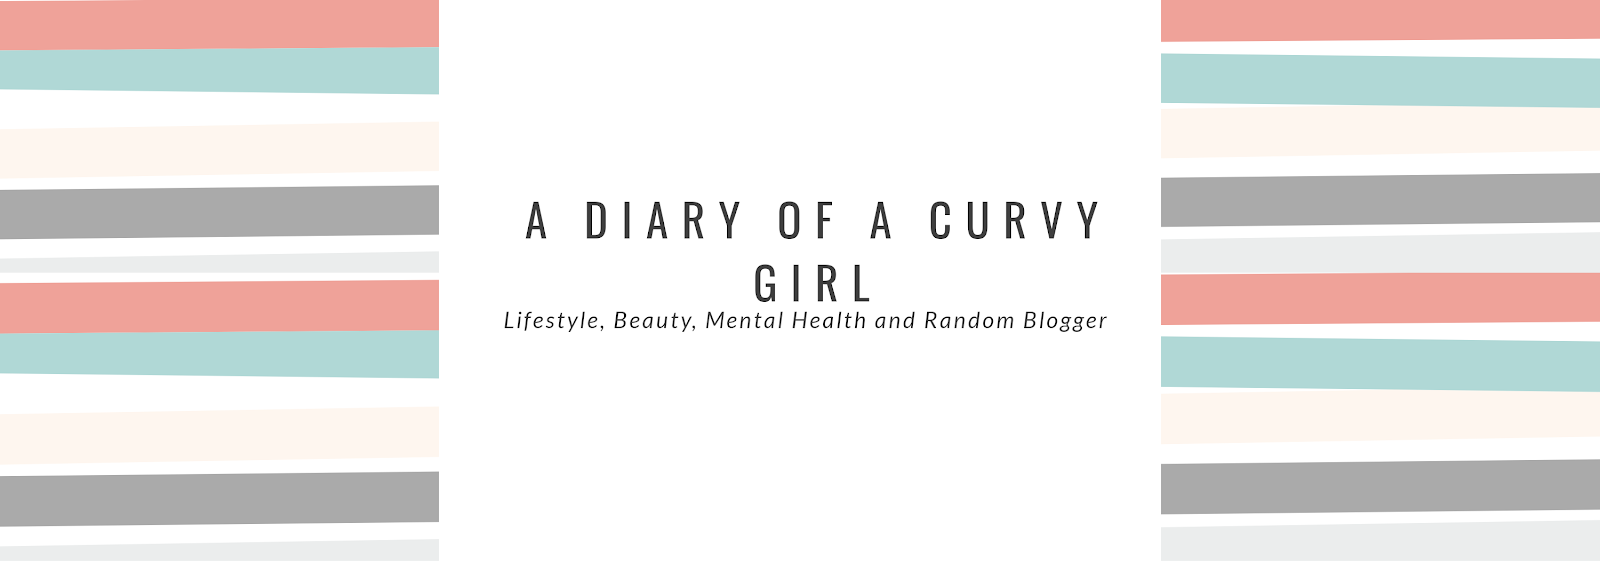 A Diary of a Curvy Girl